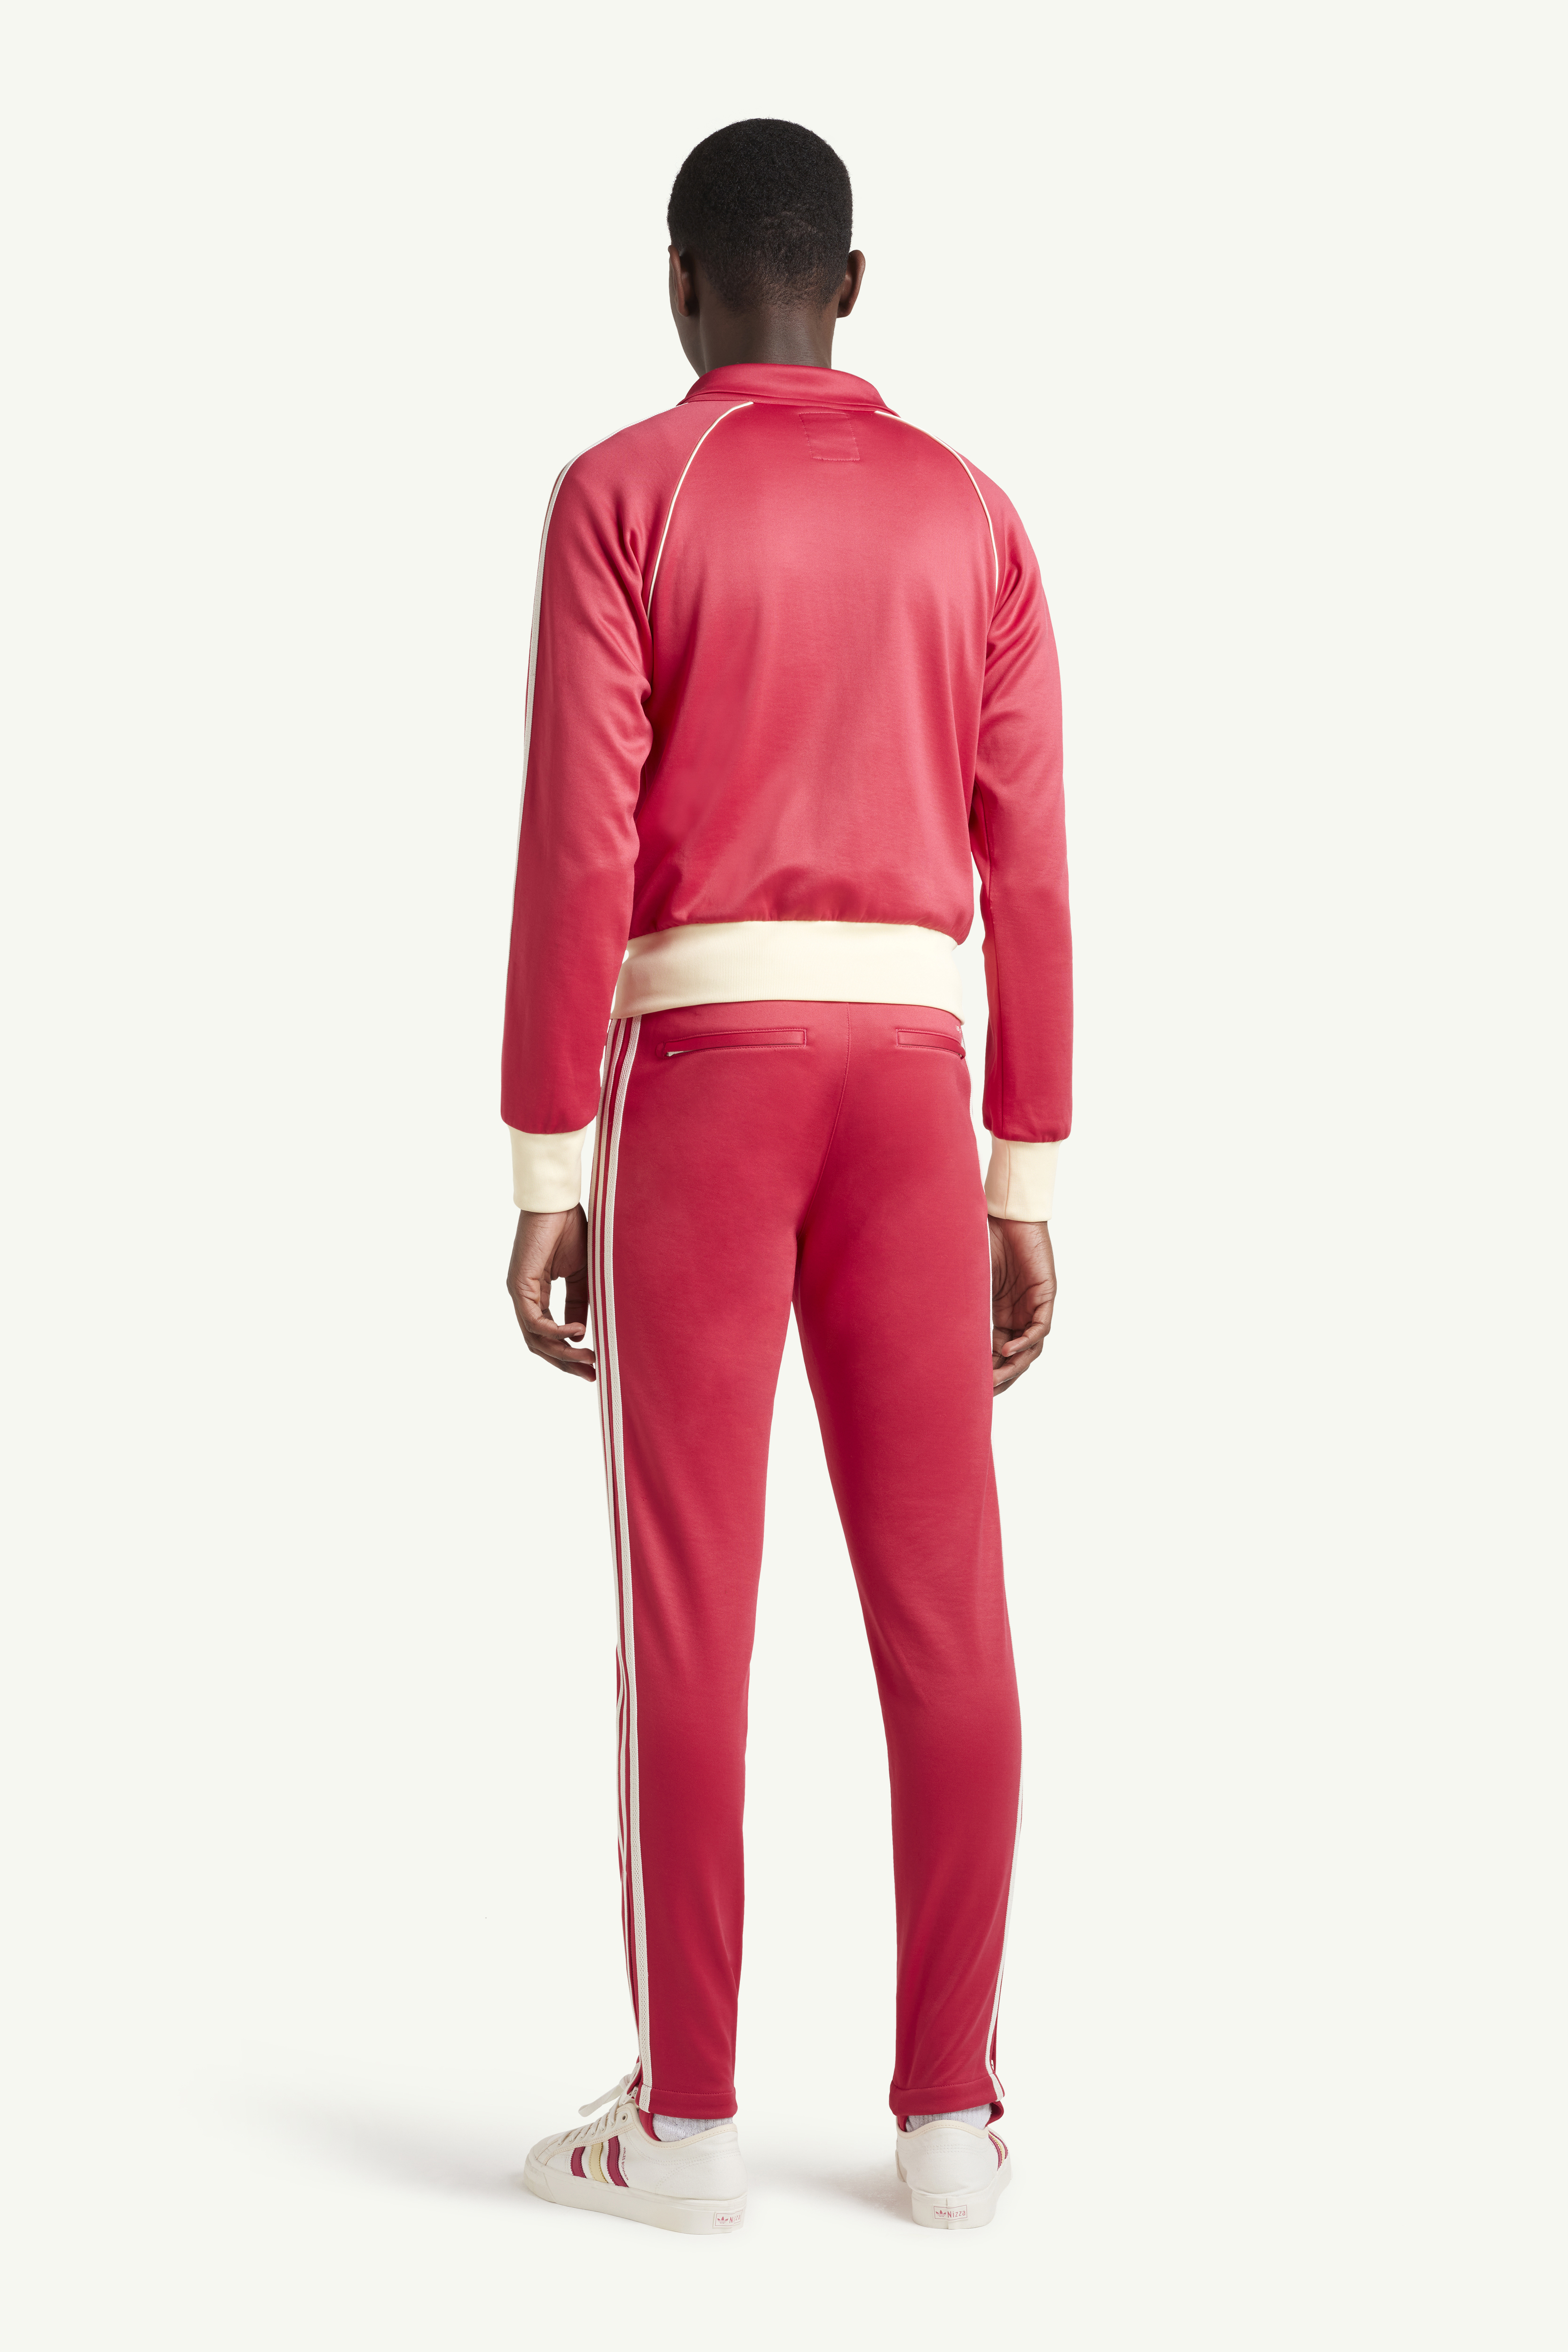 Back shot of Menswear model wearing Wales Bonner Bright red sweat suit with white trainers | LRP